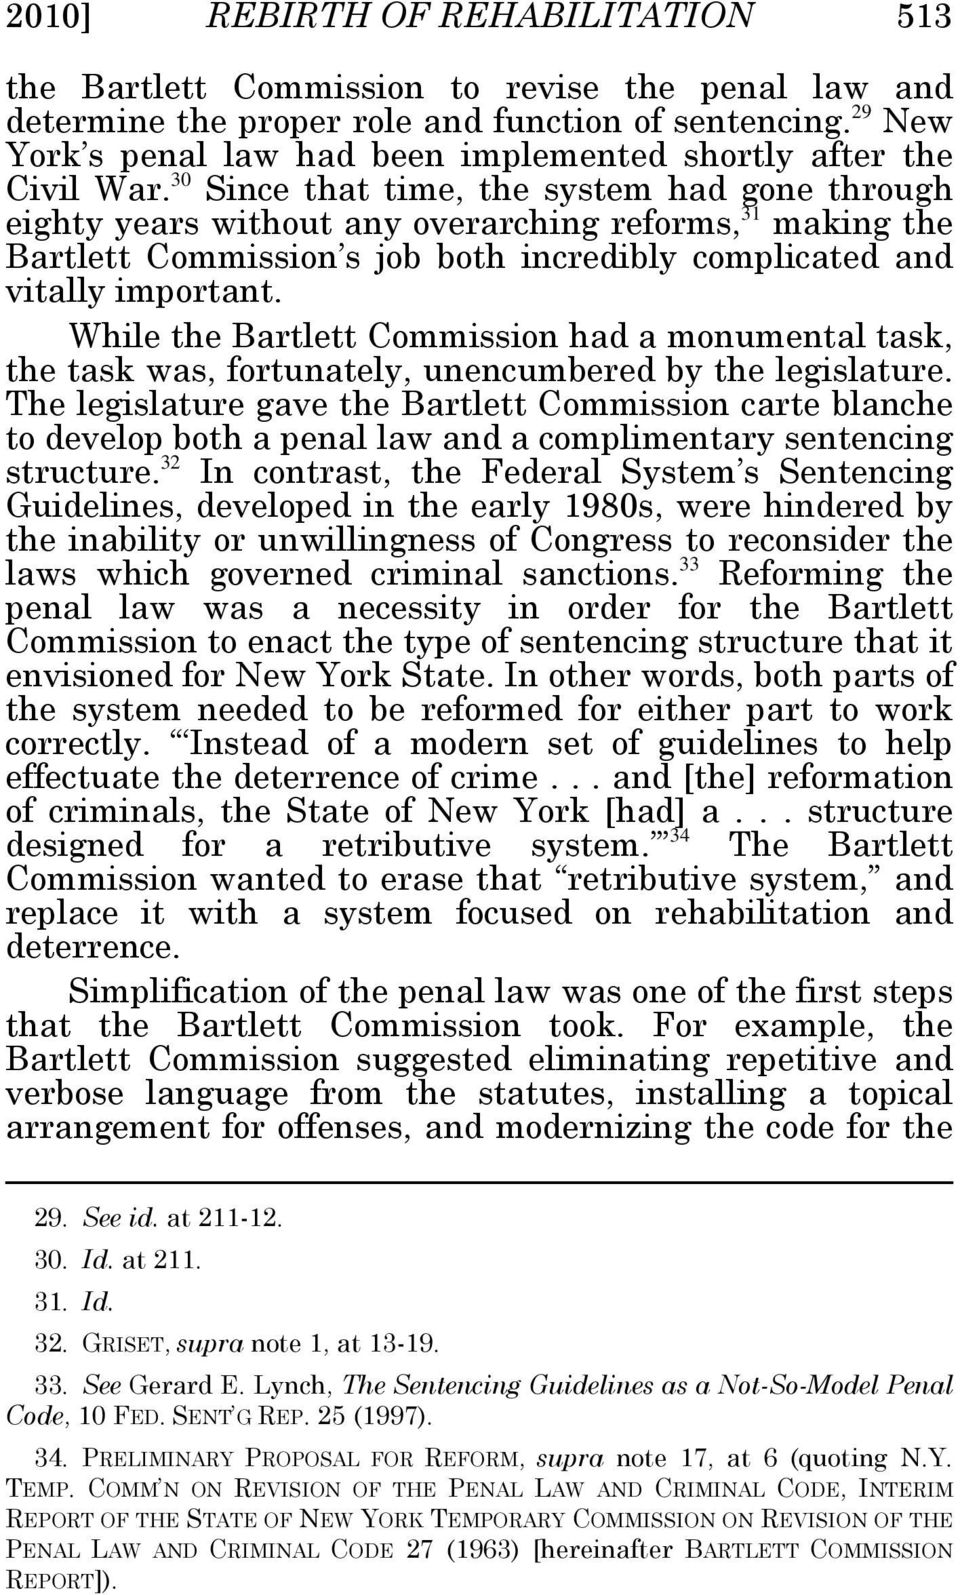 30 Since that time, the system had gone through eighty years without any overarching reforms, 31 making the Bartlett Commission s job both incredibly complicated and vitally important.